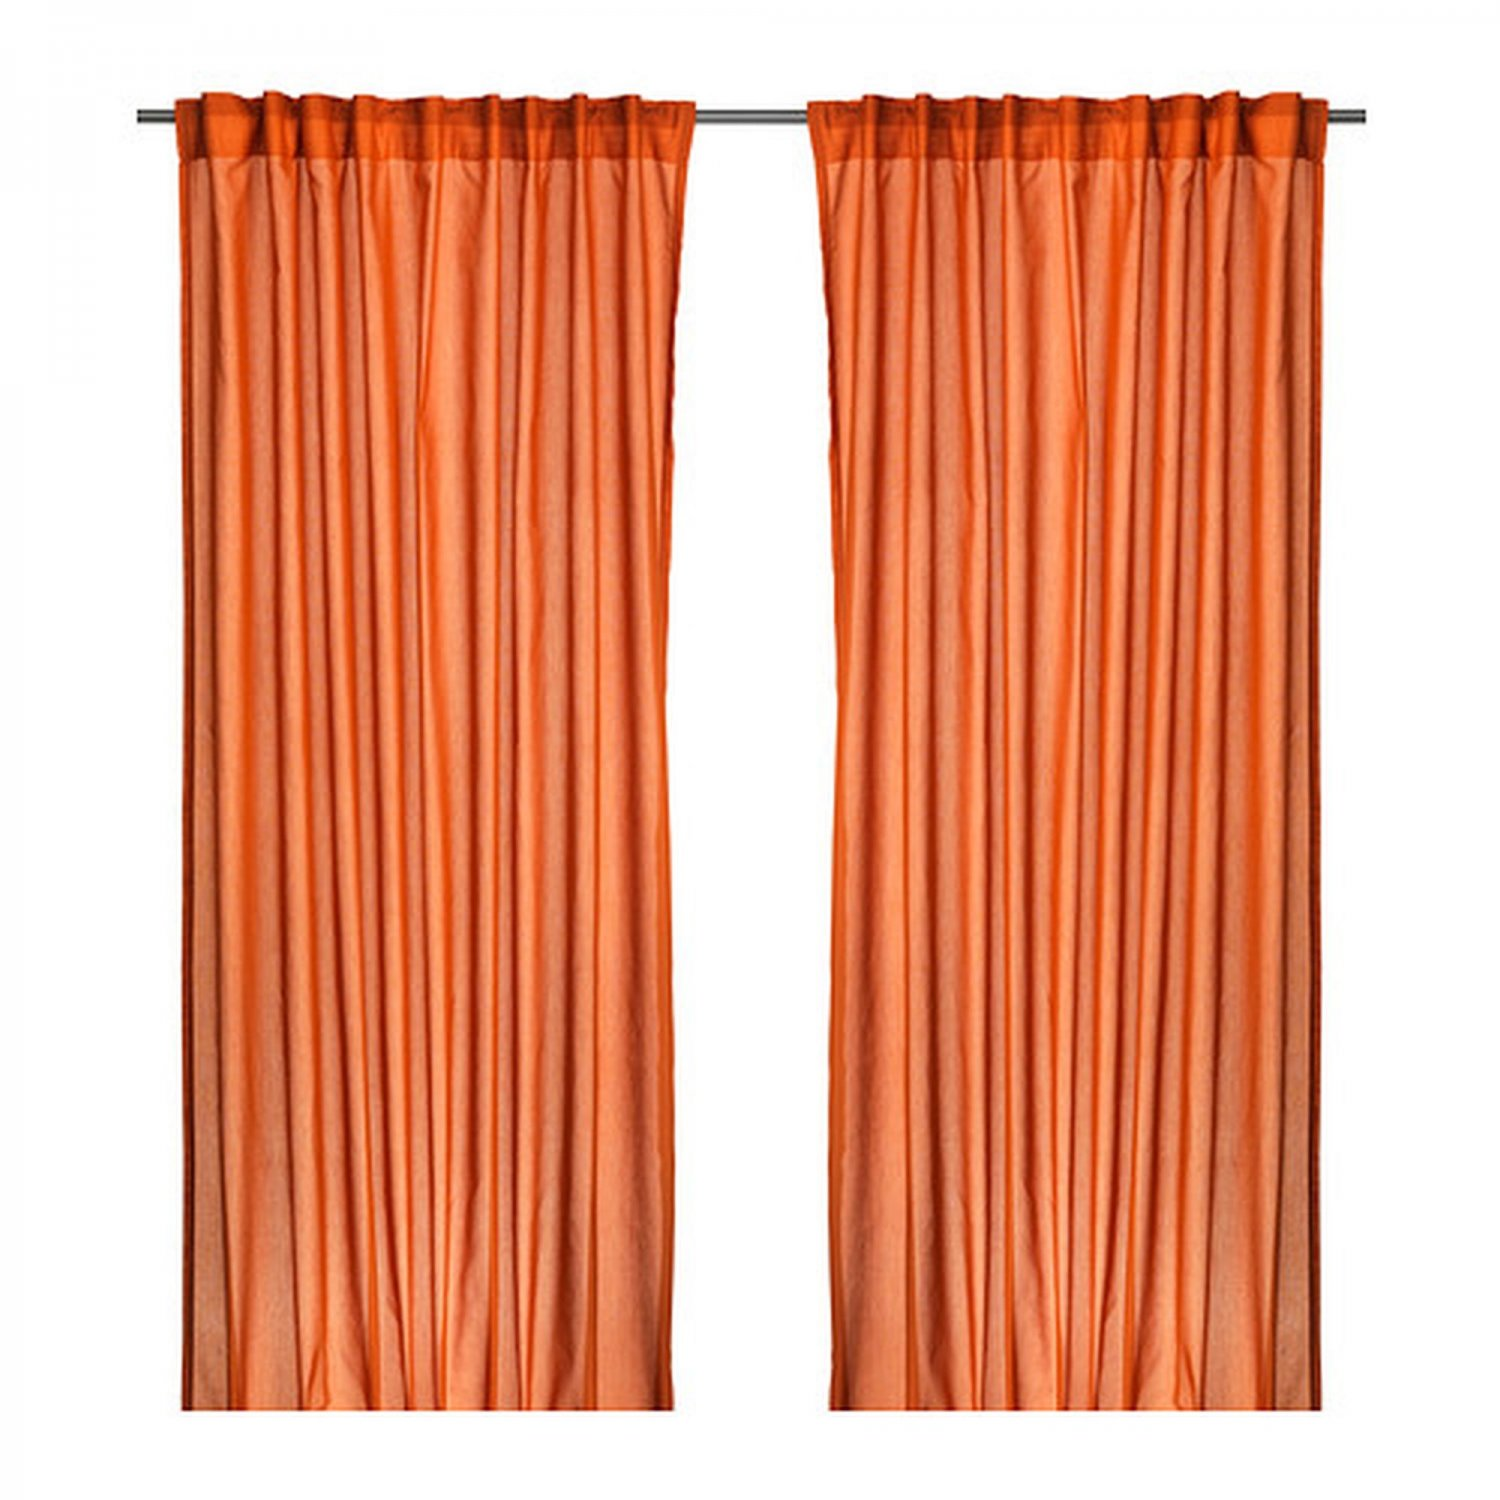 Curtain Ikea Ikea Vivan Curtains Drapes Dark Orange 2 Panels